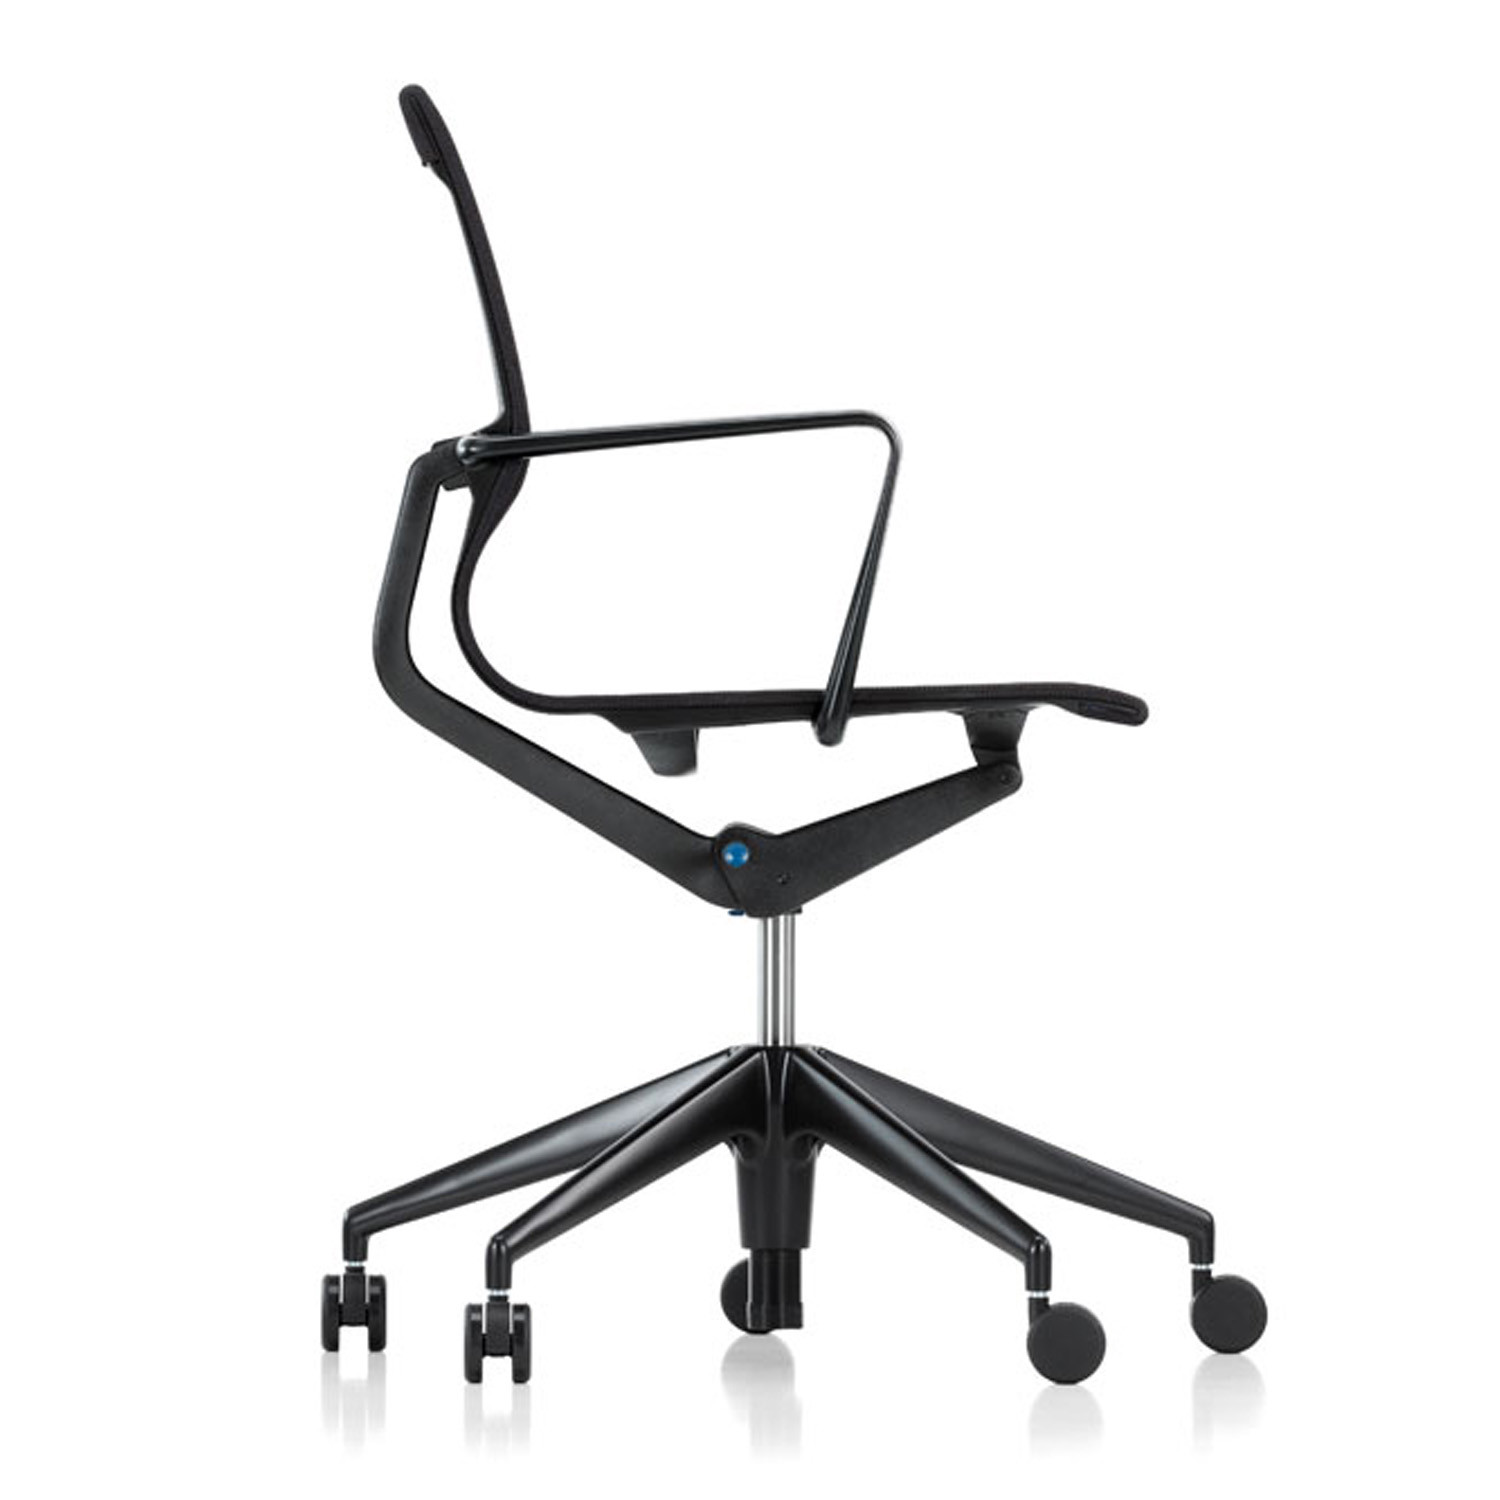 Physix Office Swivel Chair